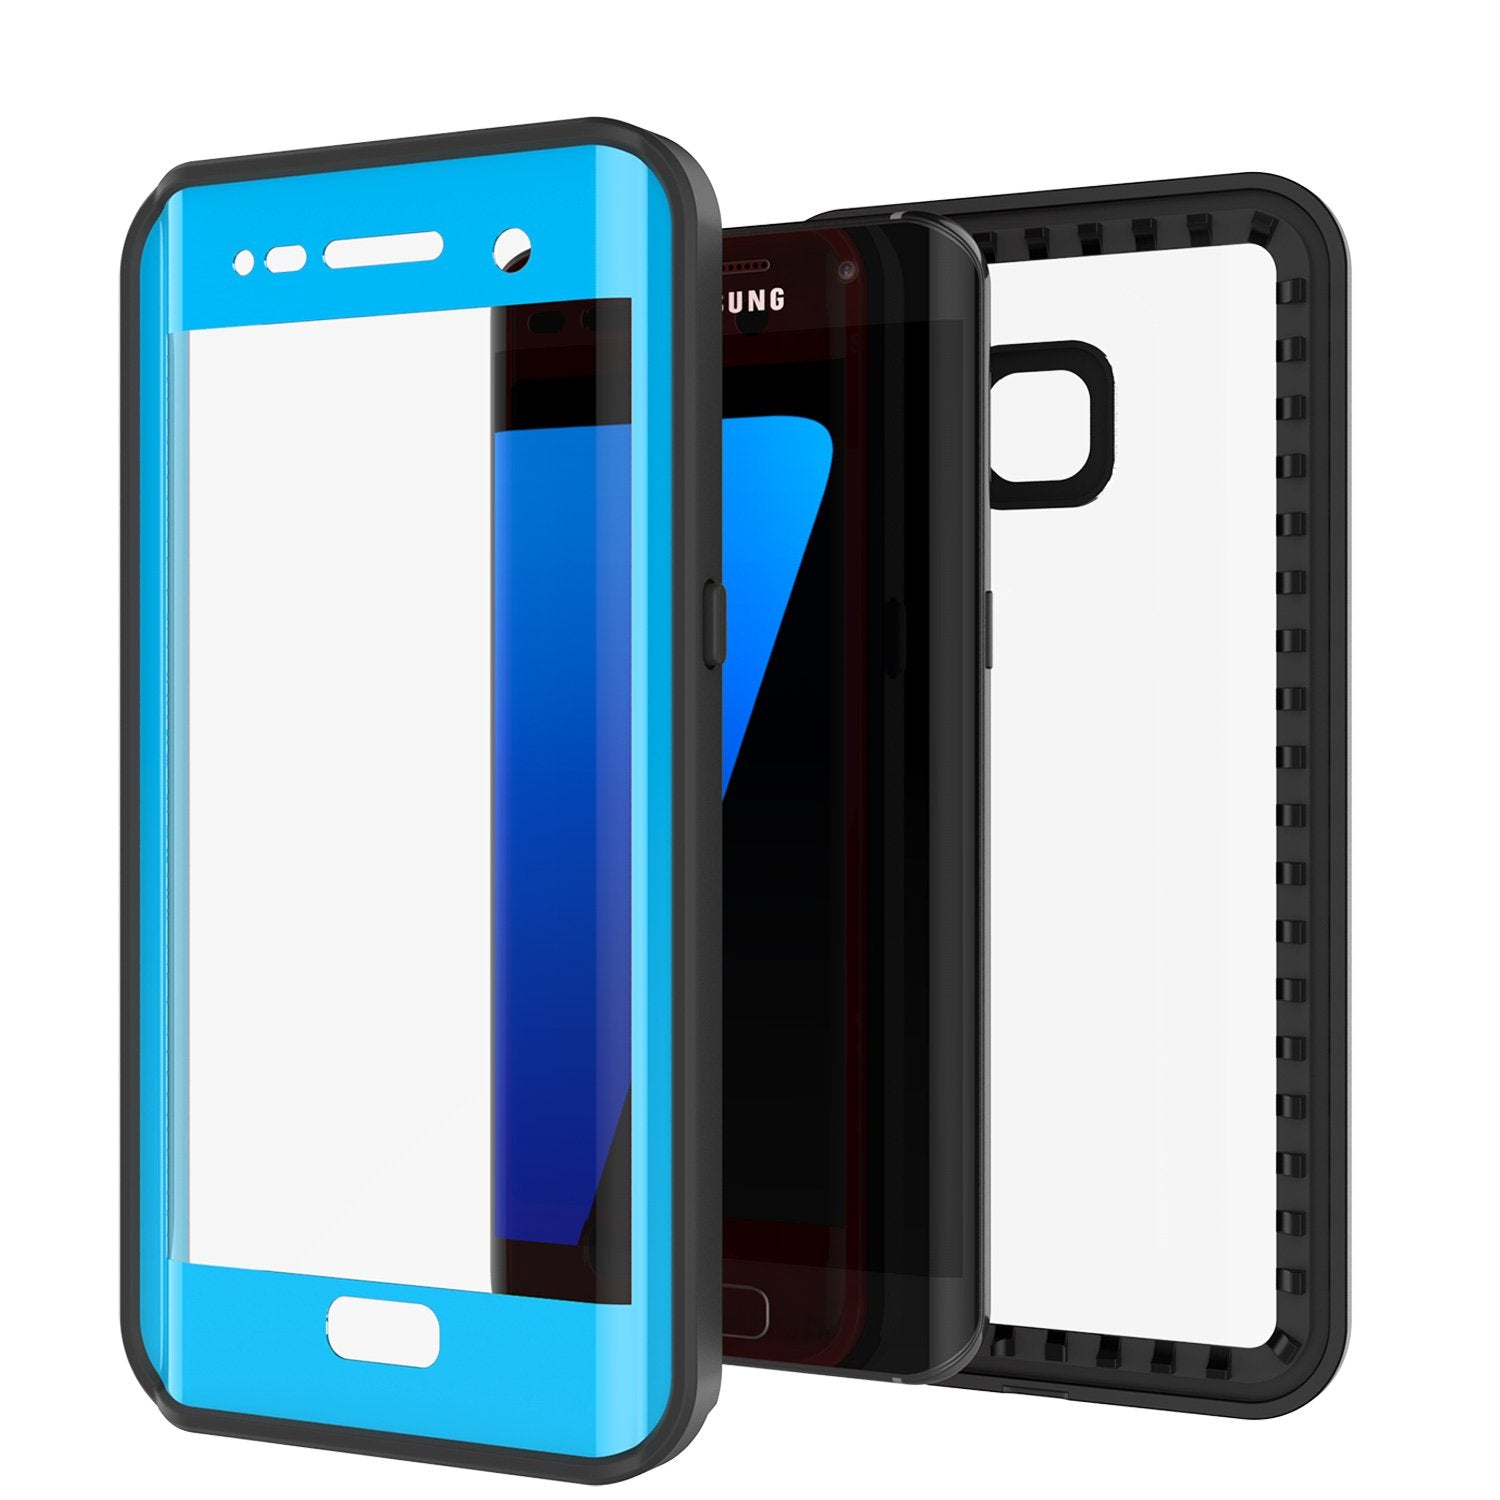 new style 10710 677b7 Galaxy S7 Edge Waterproof Case, Punkcase [Extreme Series] [Slim Fit] [IP68  Certified] Armor Cover W/ Built In Screen Protector [LIGHT BLUE]